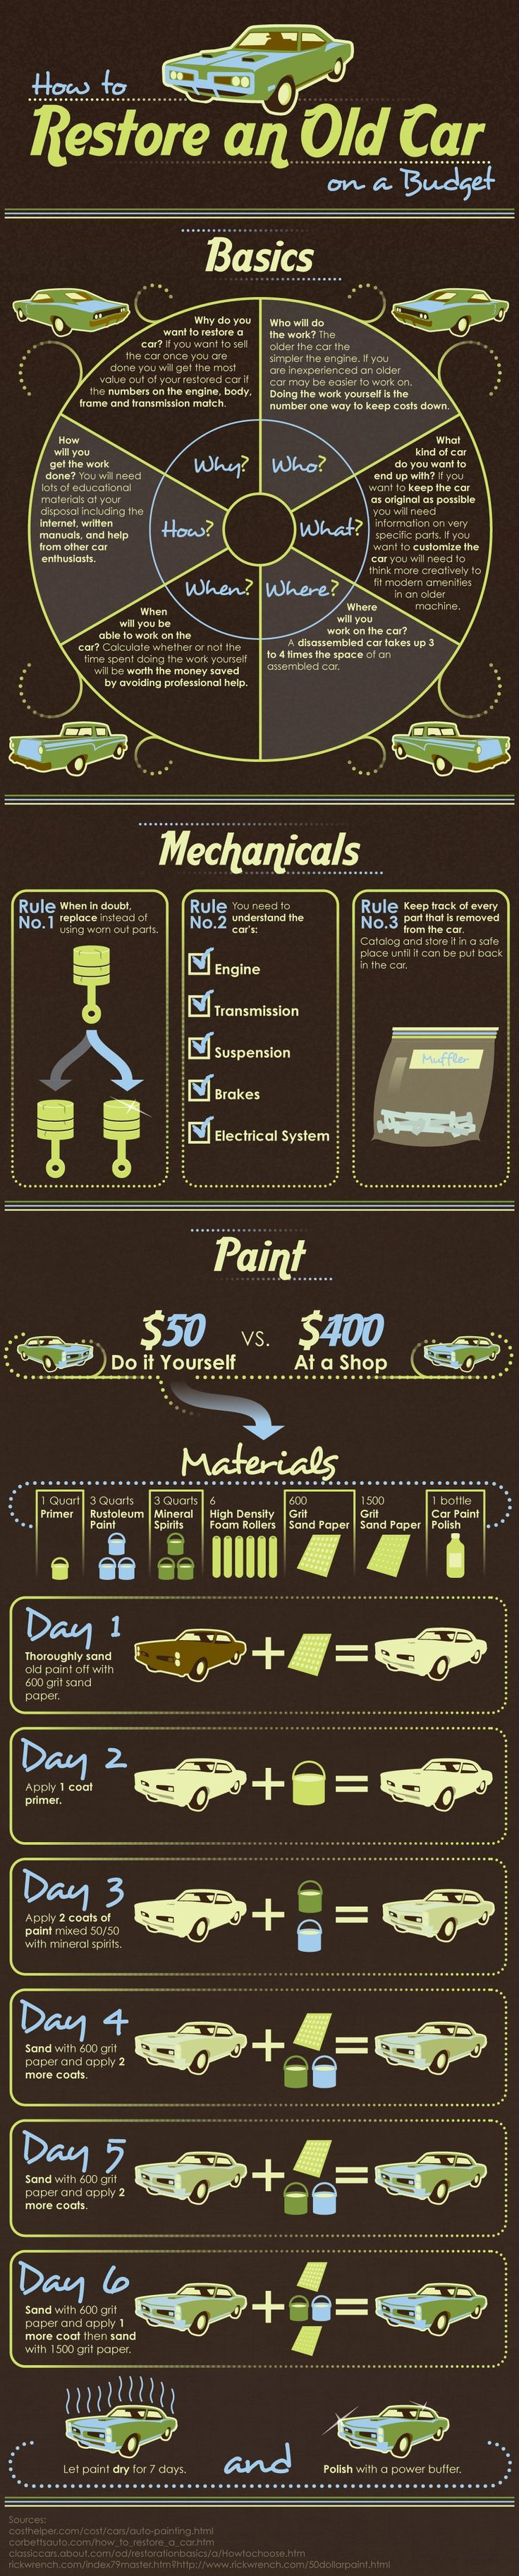 Cool infographic on how to restore an old car on a budget. #classic #muscle #cars